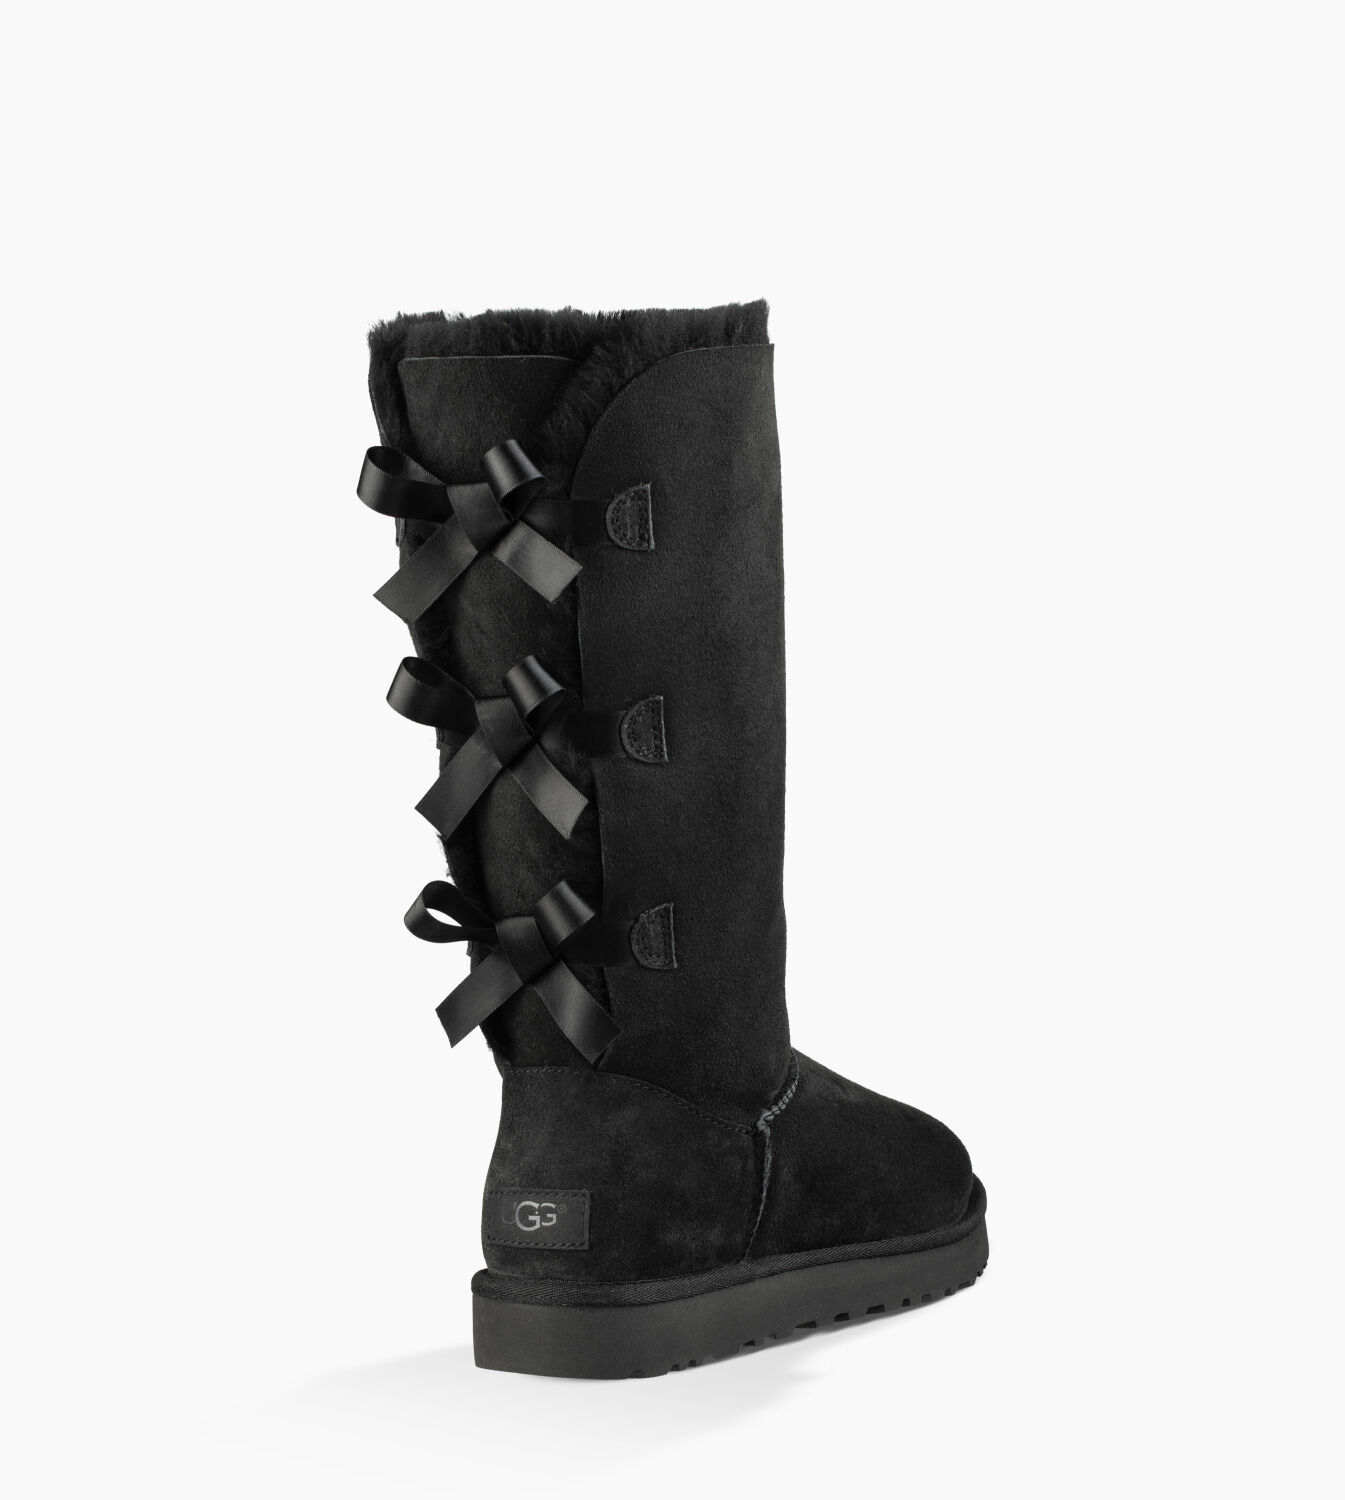 Watch The Ugg Boot Is Officially Back, According to Vogue video